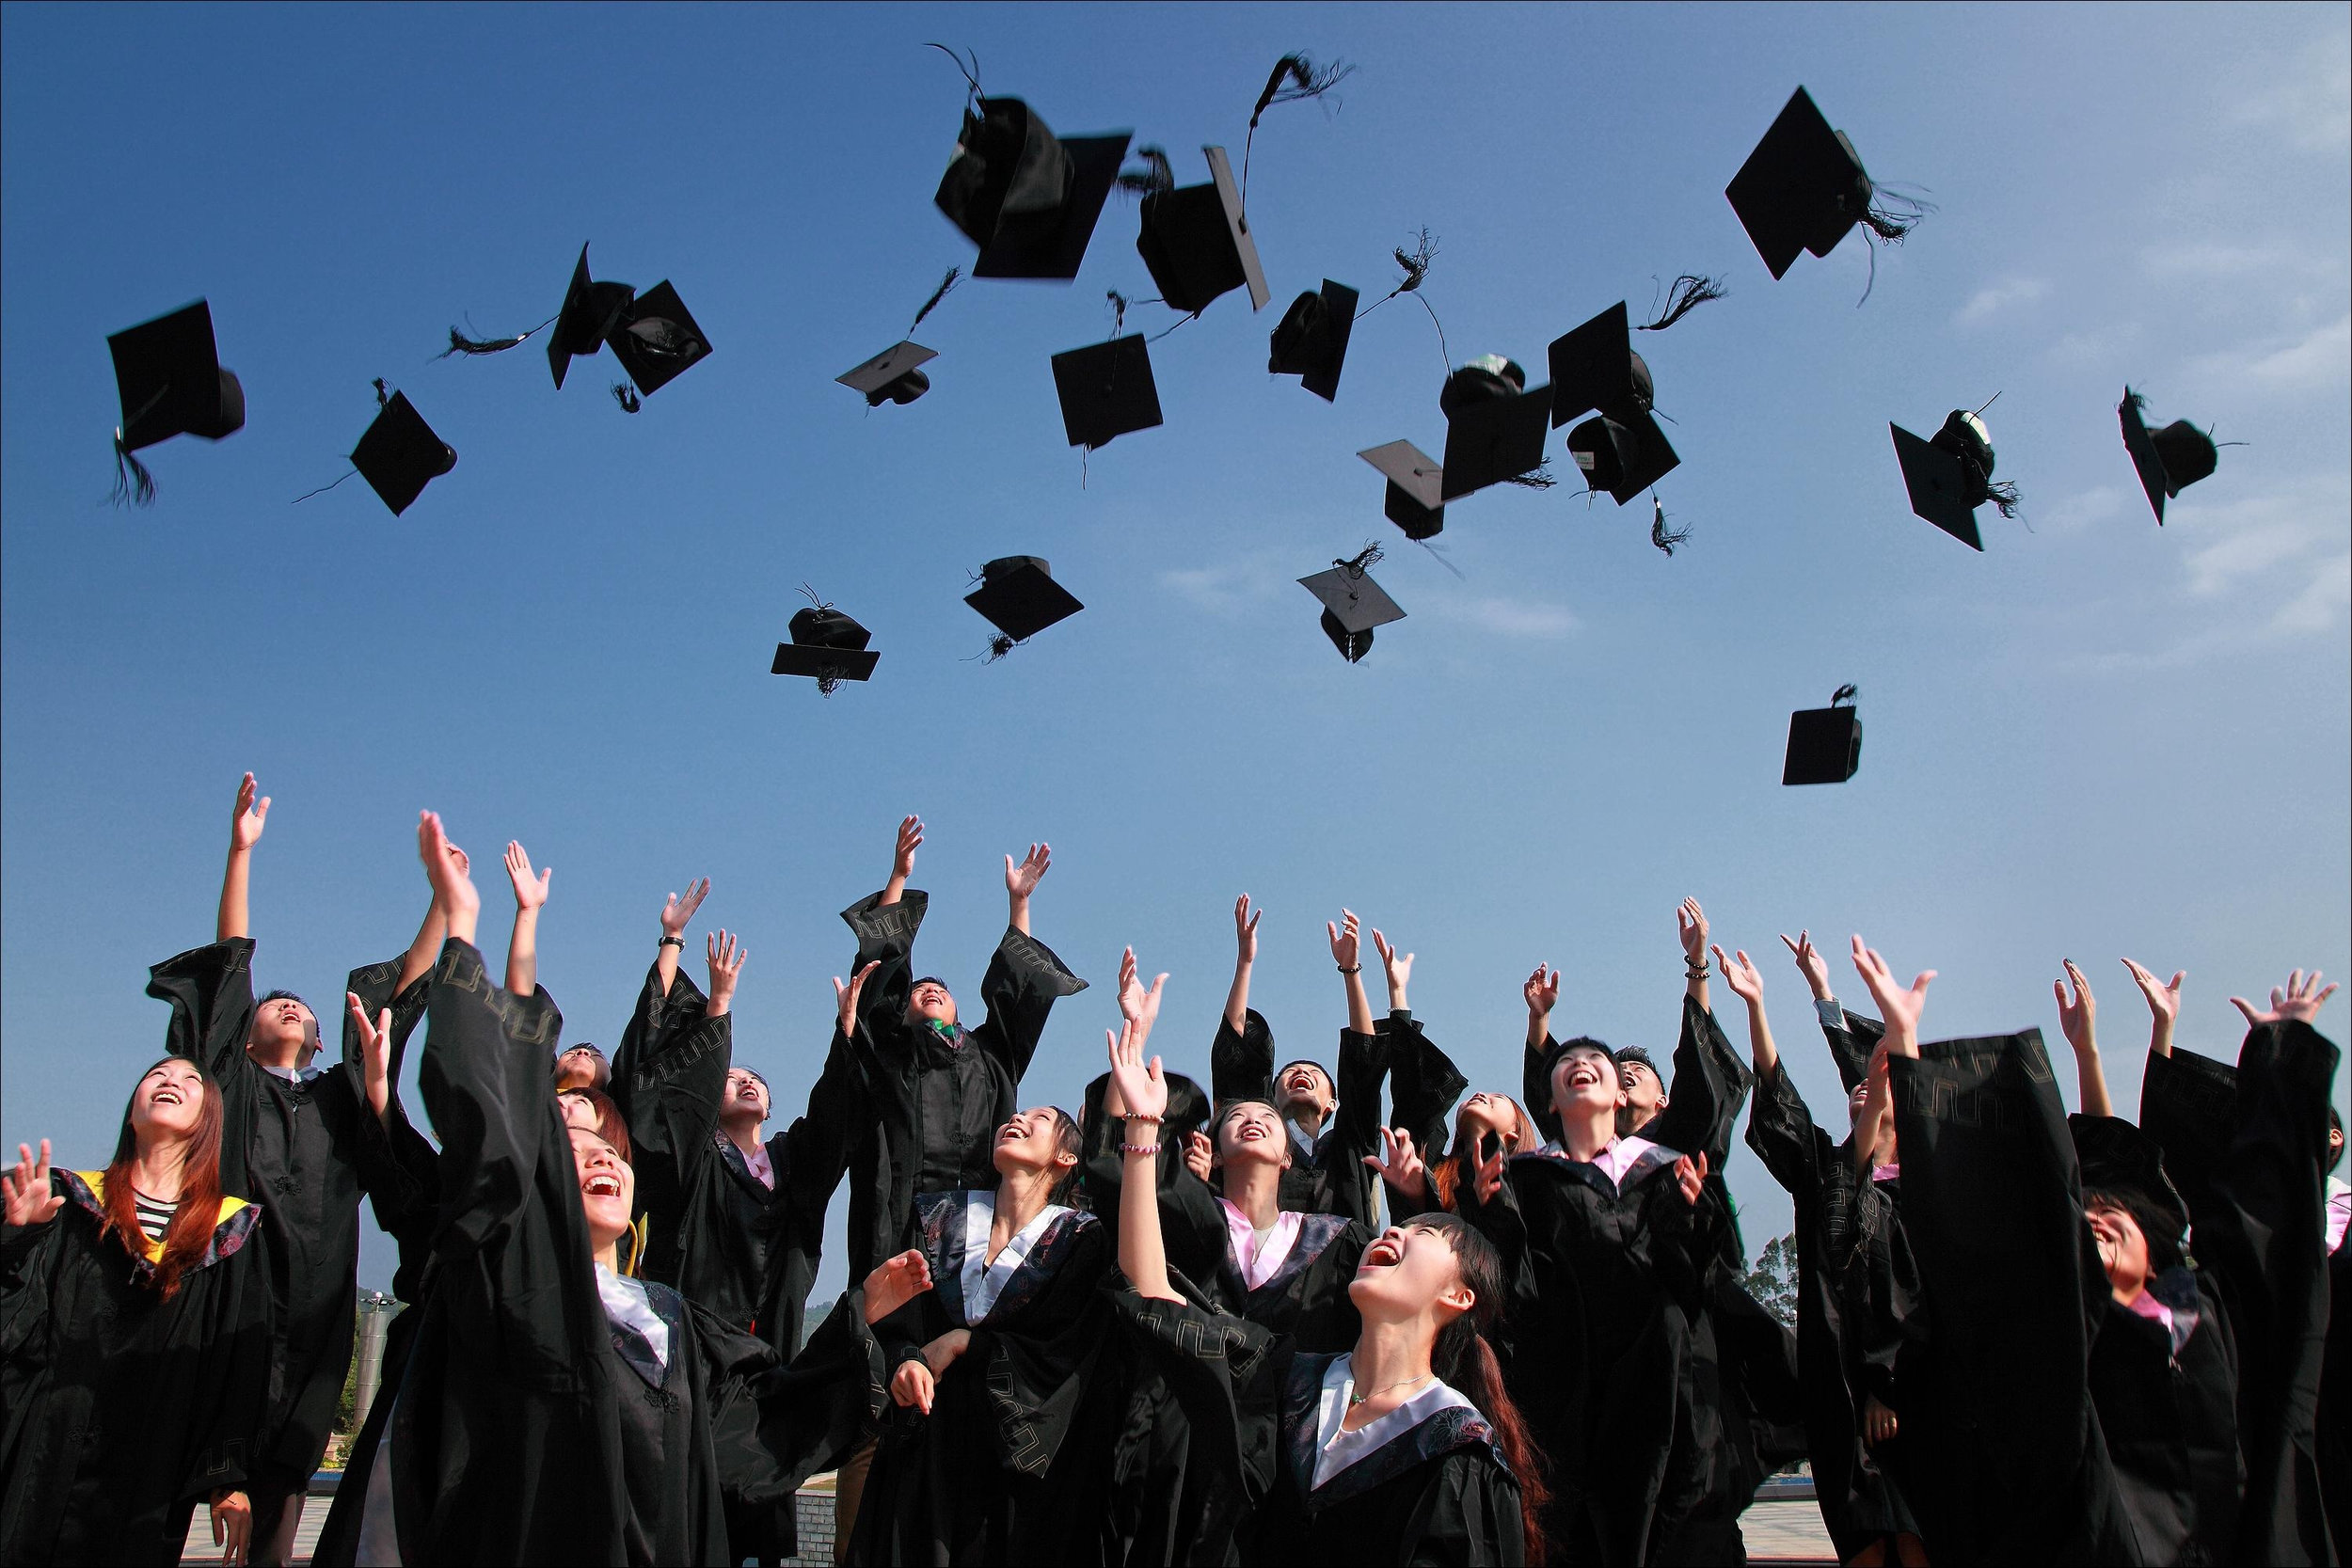 Canva - Newly Graduated People Wearing Black Academy Gowns Throwing Hats Up in the Air.jpg